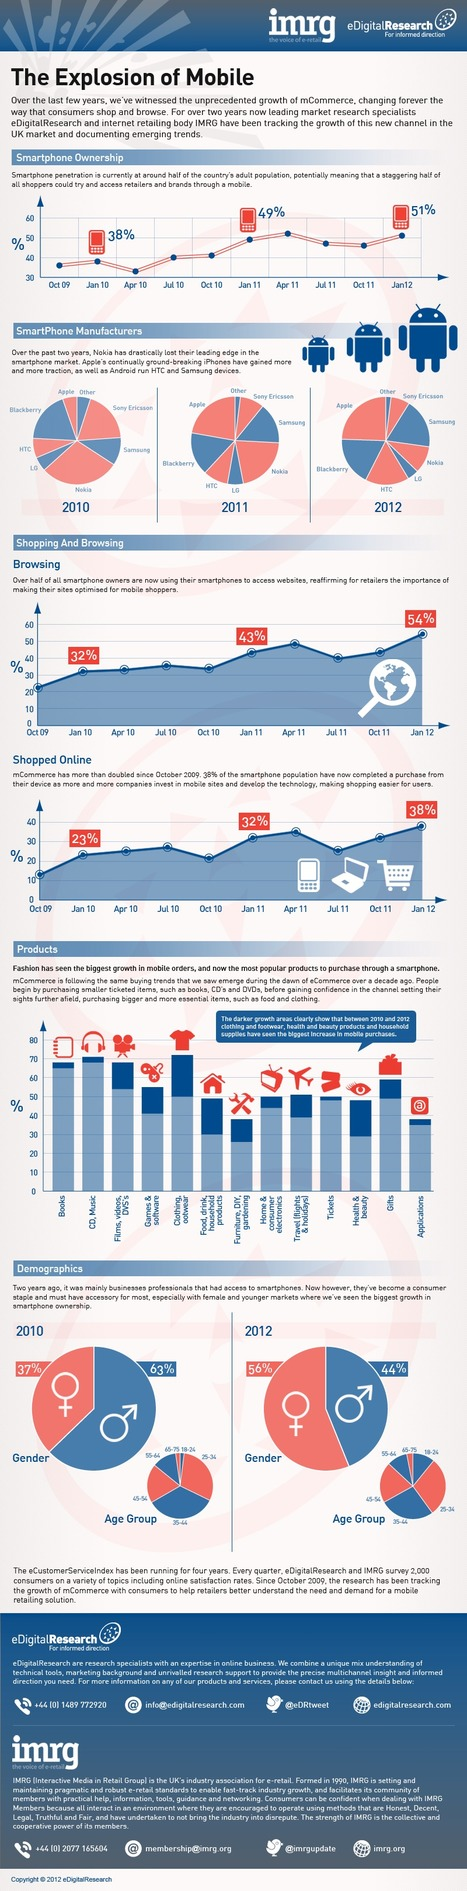 The growth of mobile commerce: infographic | media sociaux et mobile | Scoop.it